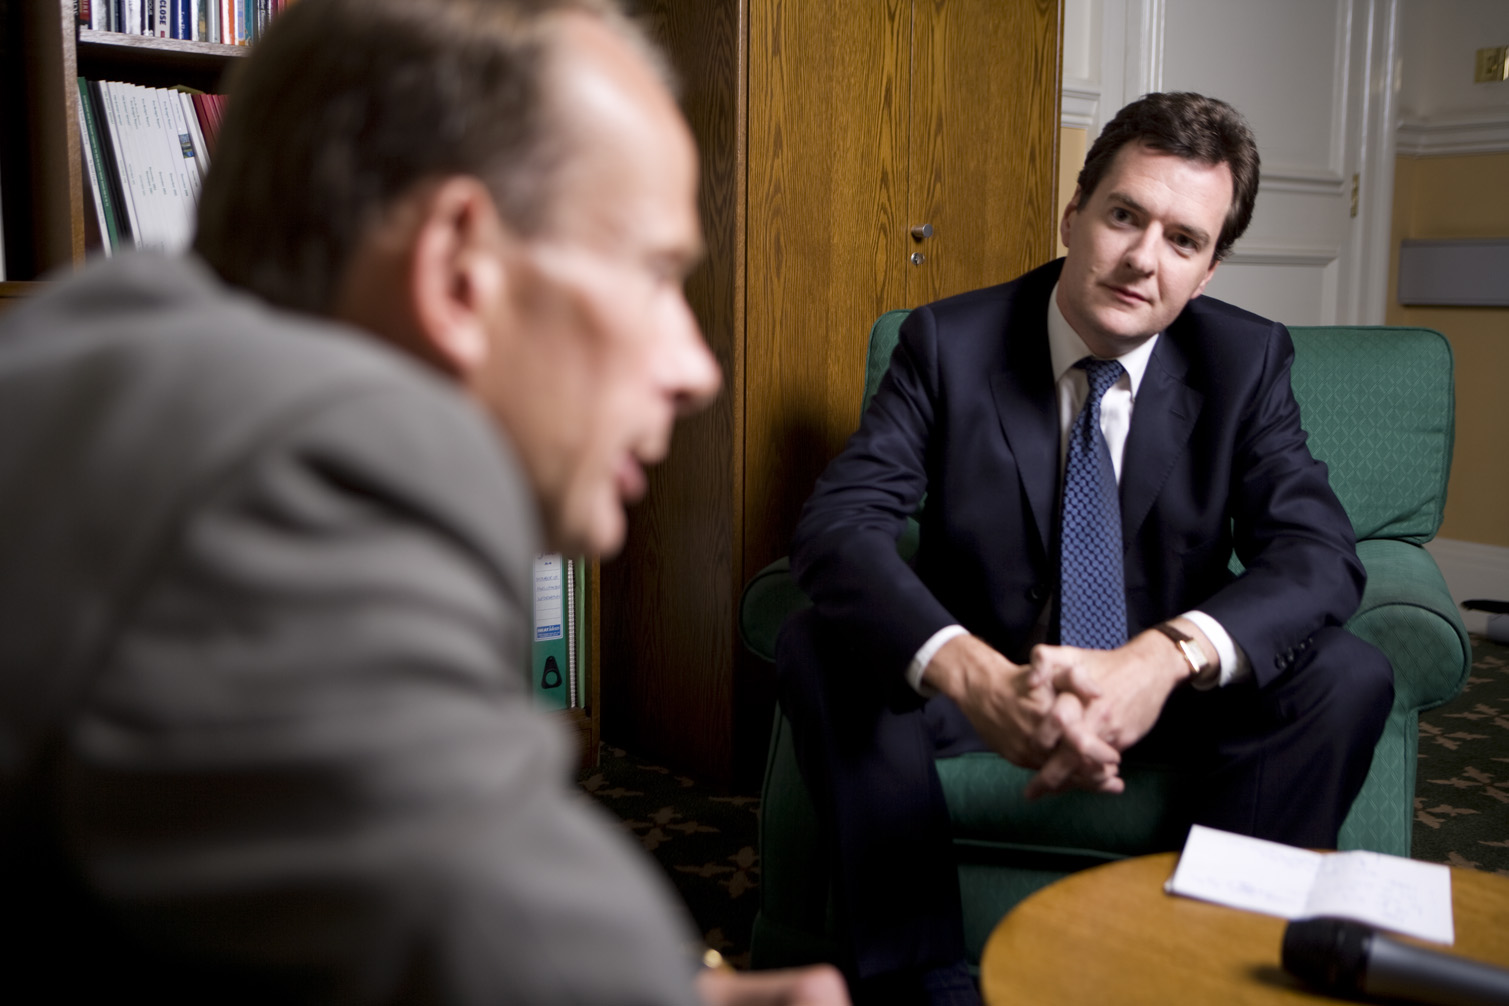 MP George Osbourne, quizzes Journalist Andrew Marr